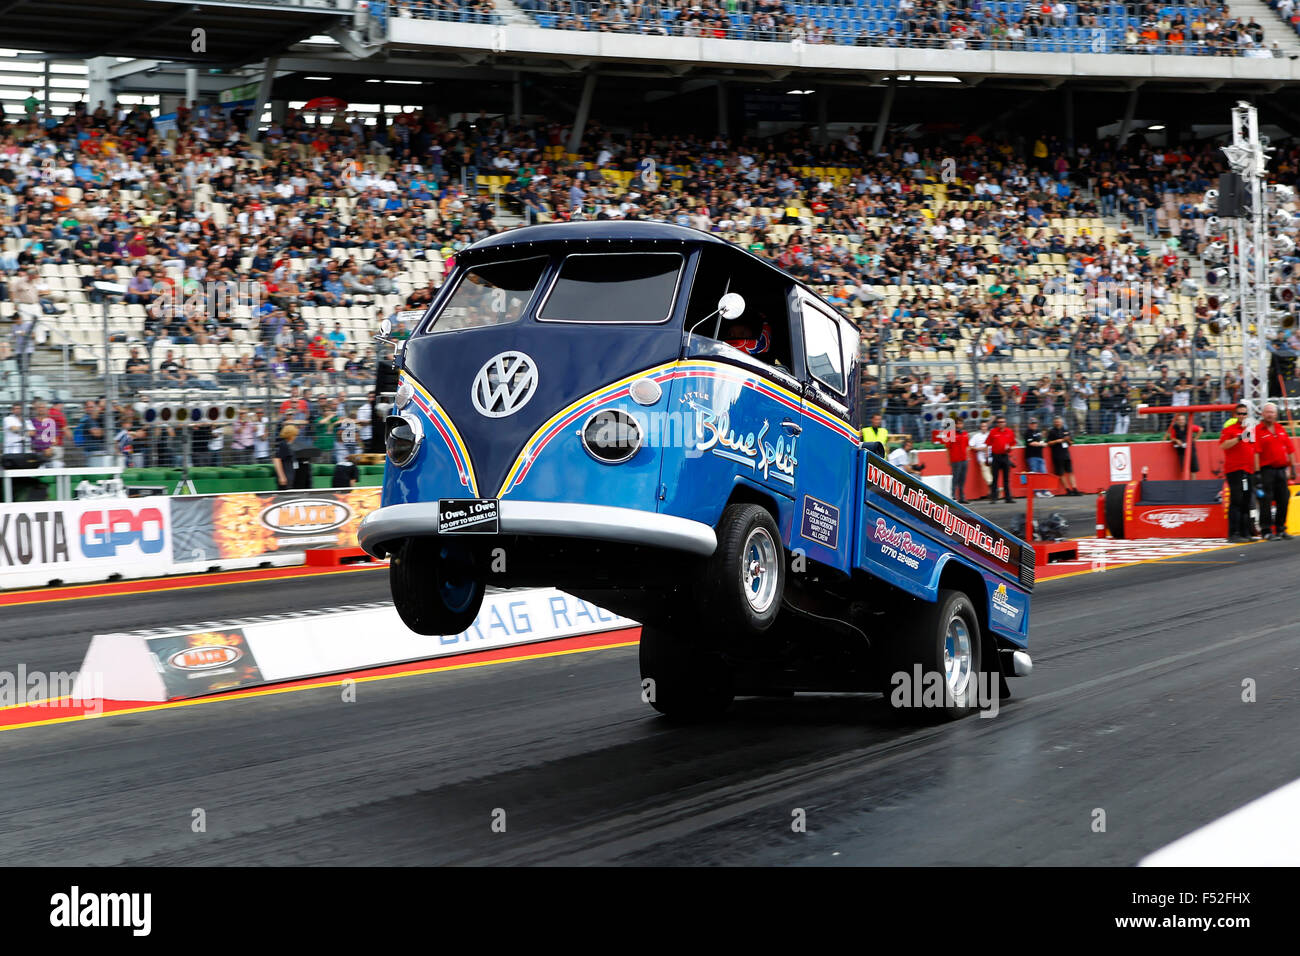 Car, Nitro Olympics Hockenheim in 2011, tuned VW Bus in front of filled tribunes, Wheelie, - Stock Image